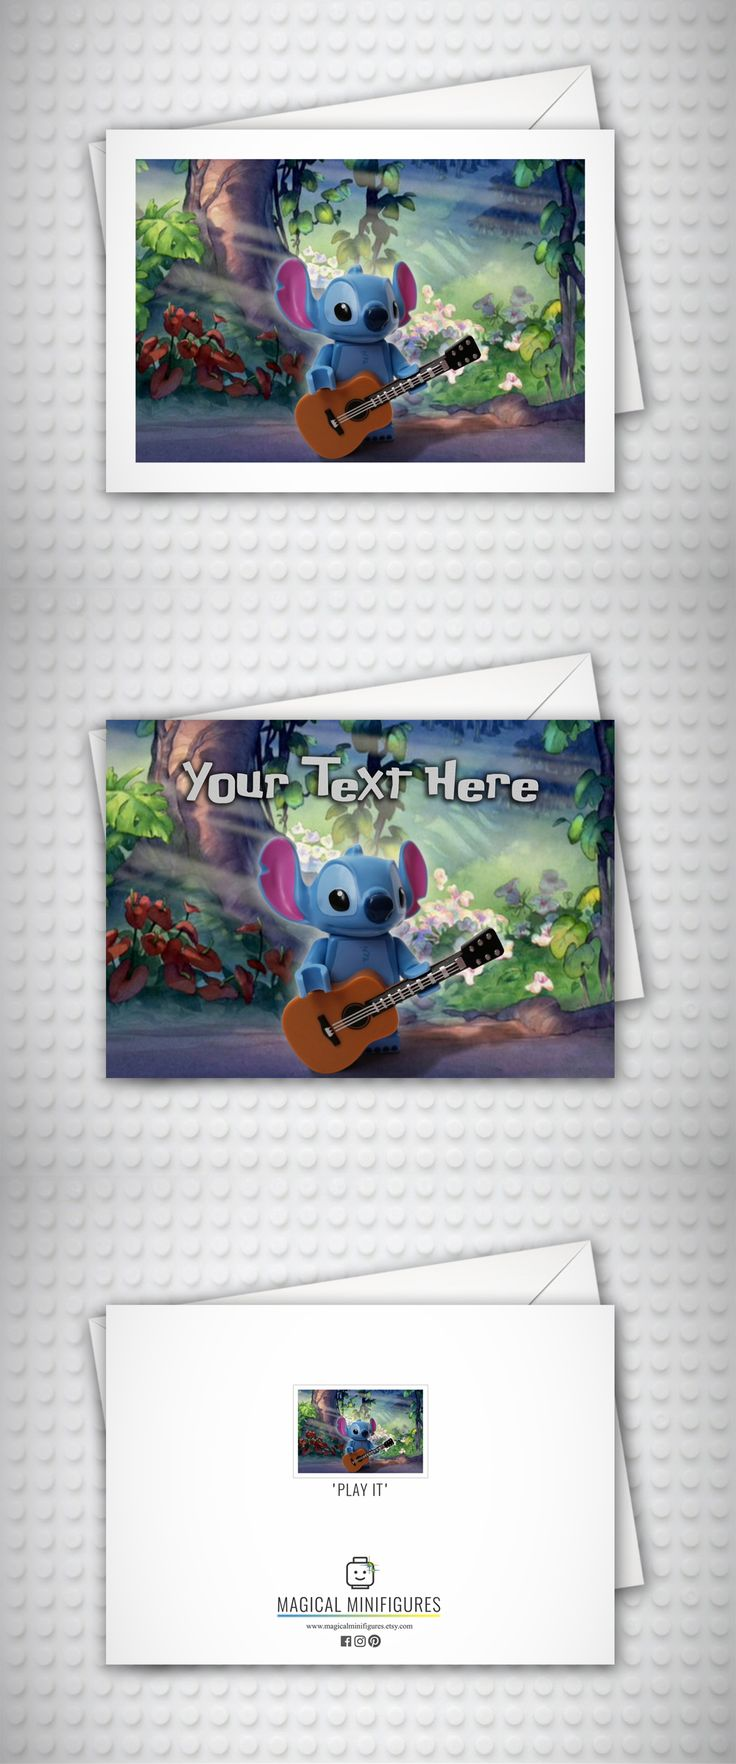 Lilo and Stitch - Disney - Lego Minifigure - Funny Birthday Card - Thank You Card - Stitch Playing Guitar